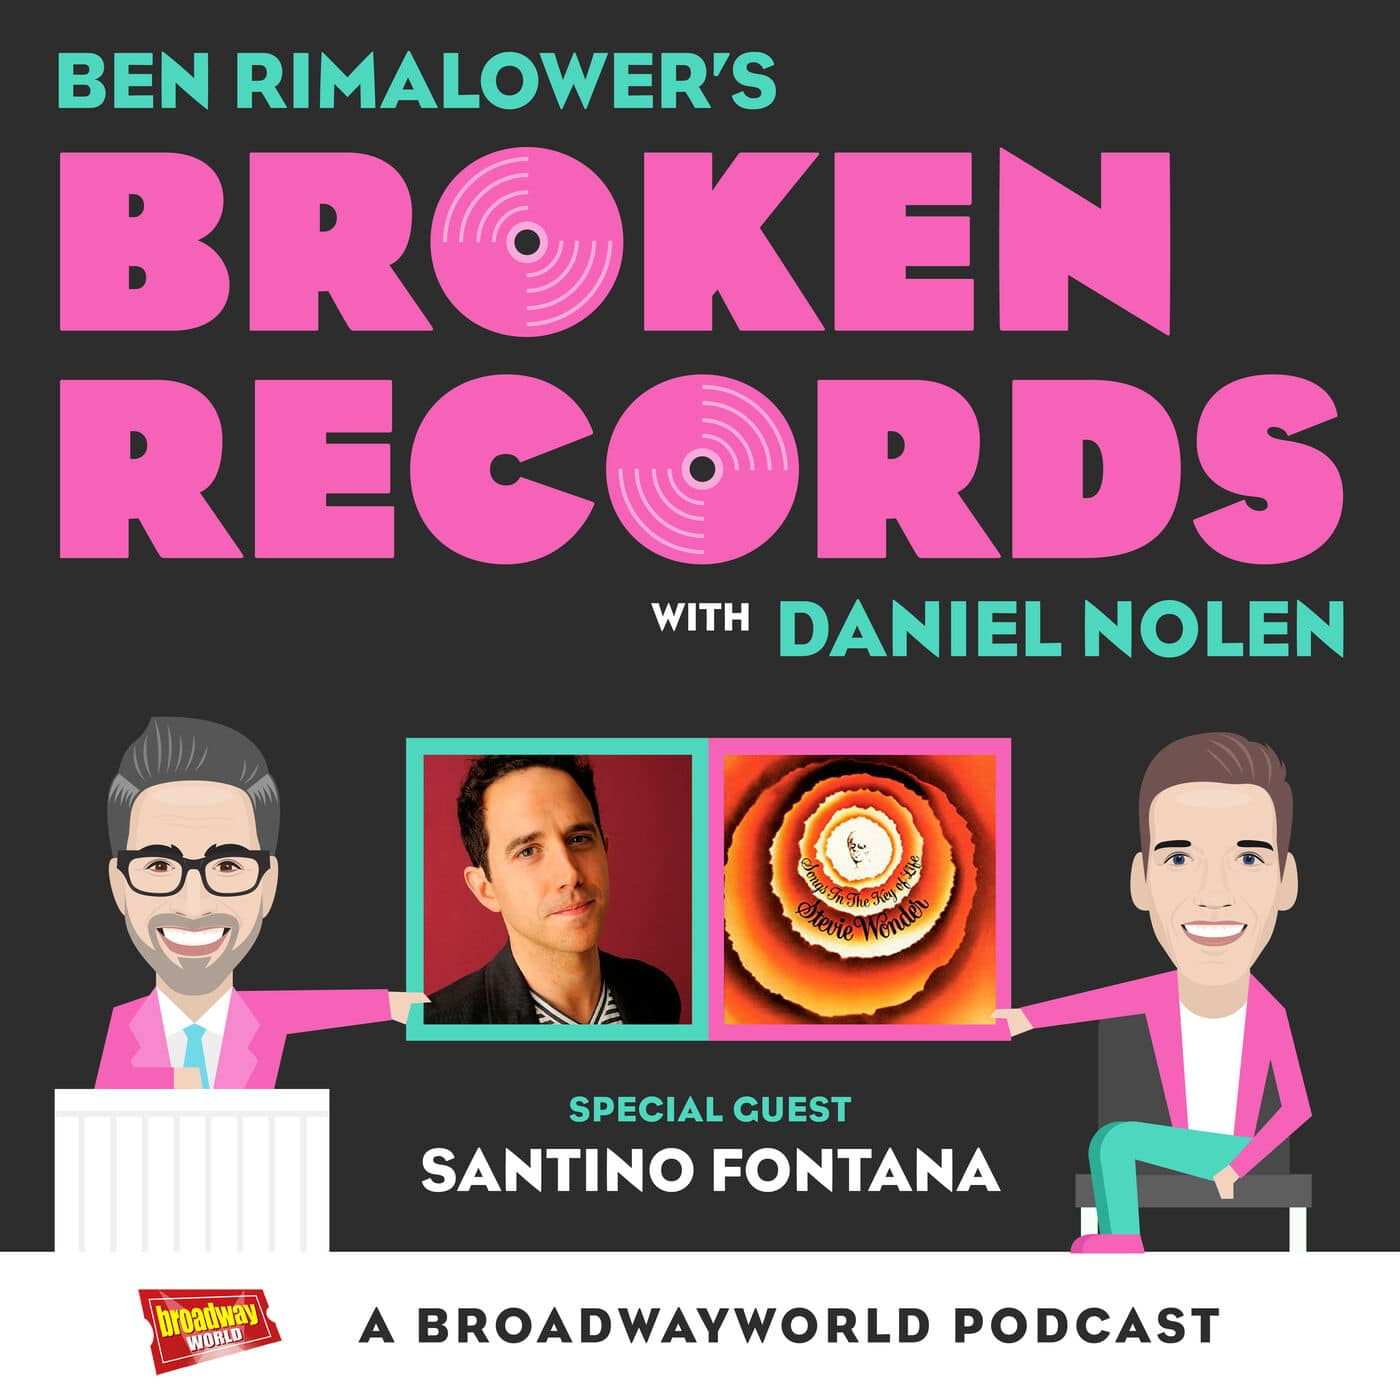 Ben Rimalower's Broken Records Daniel Nolen Episode 4